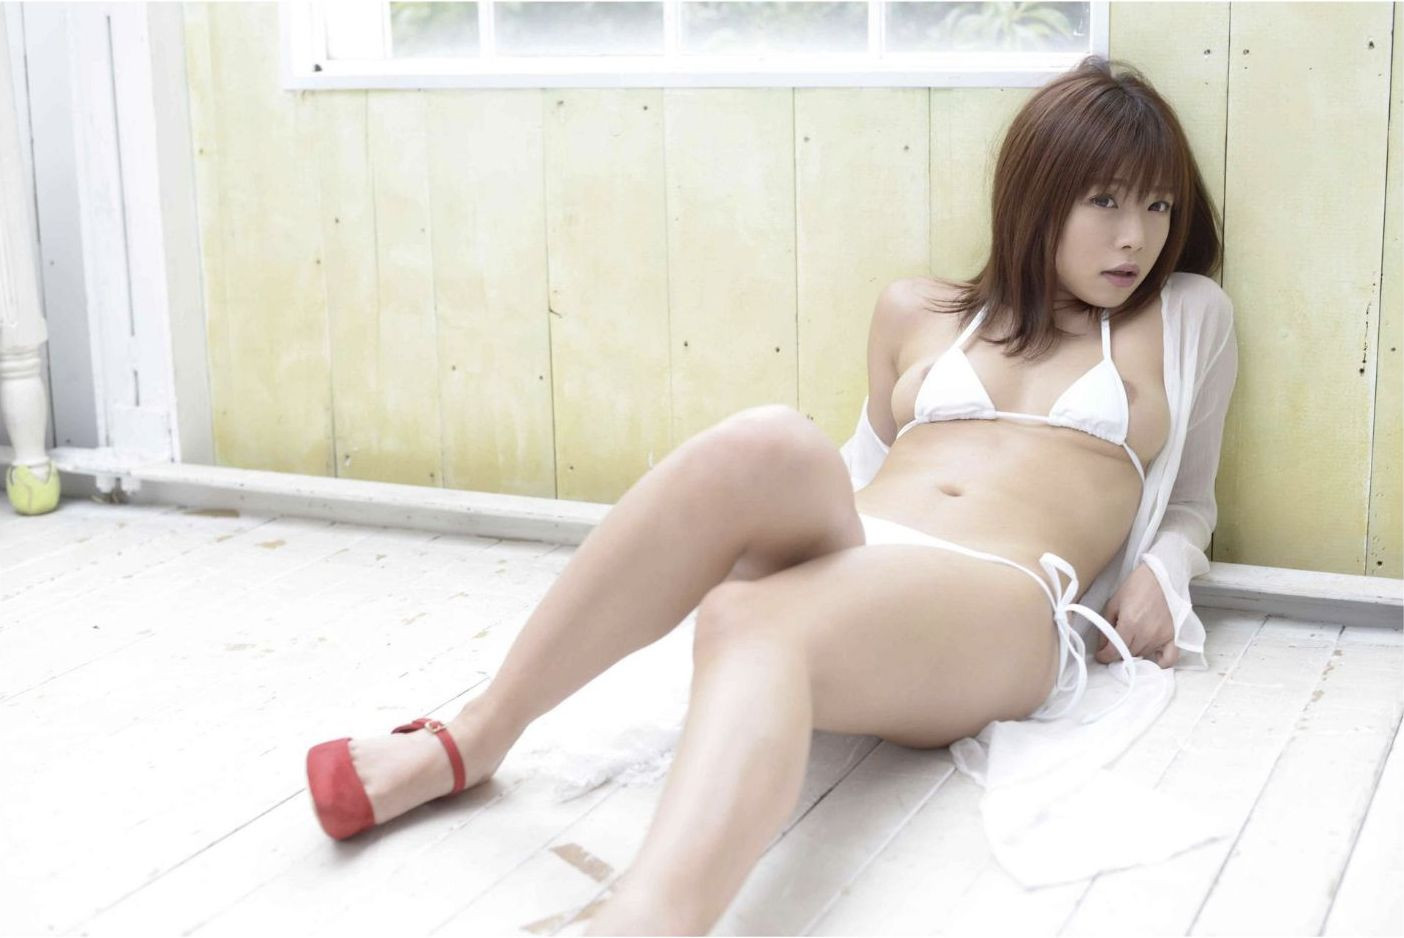 SOFT ON DEMAND GRAVURE COLLECTION 紗倉まな02 photo 046